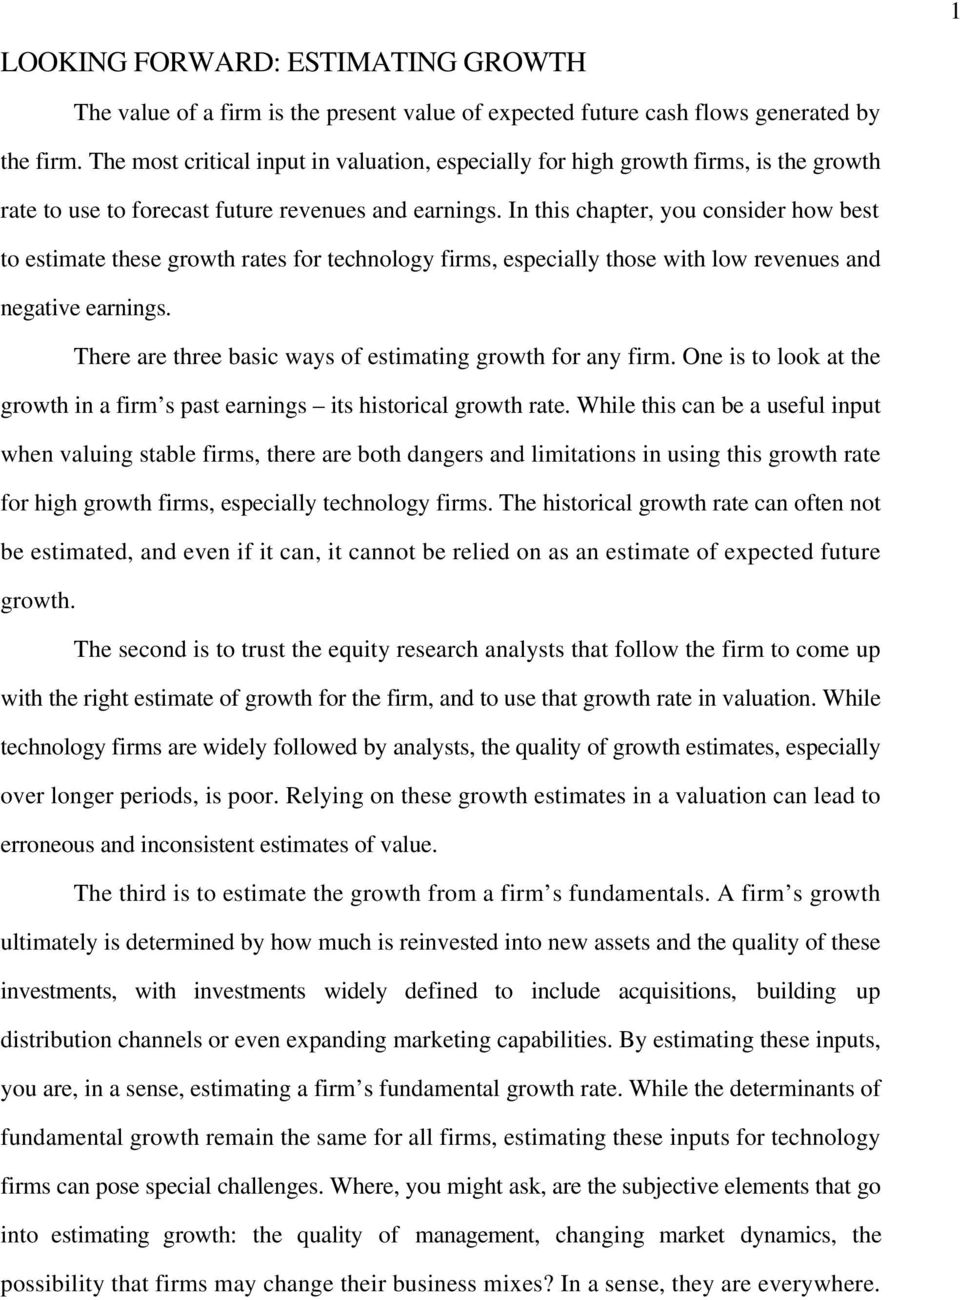 In this chapter, you consider how best to estimate these growth rates for technology firms, especially those with low revenues and negative earnings.